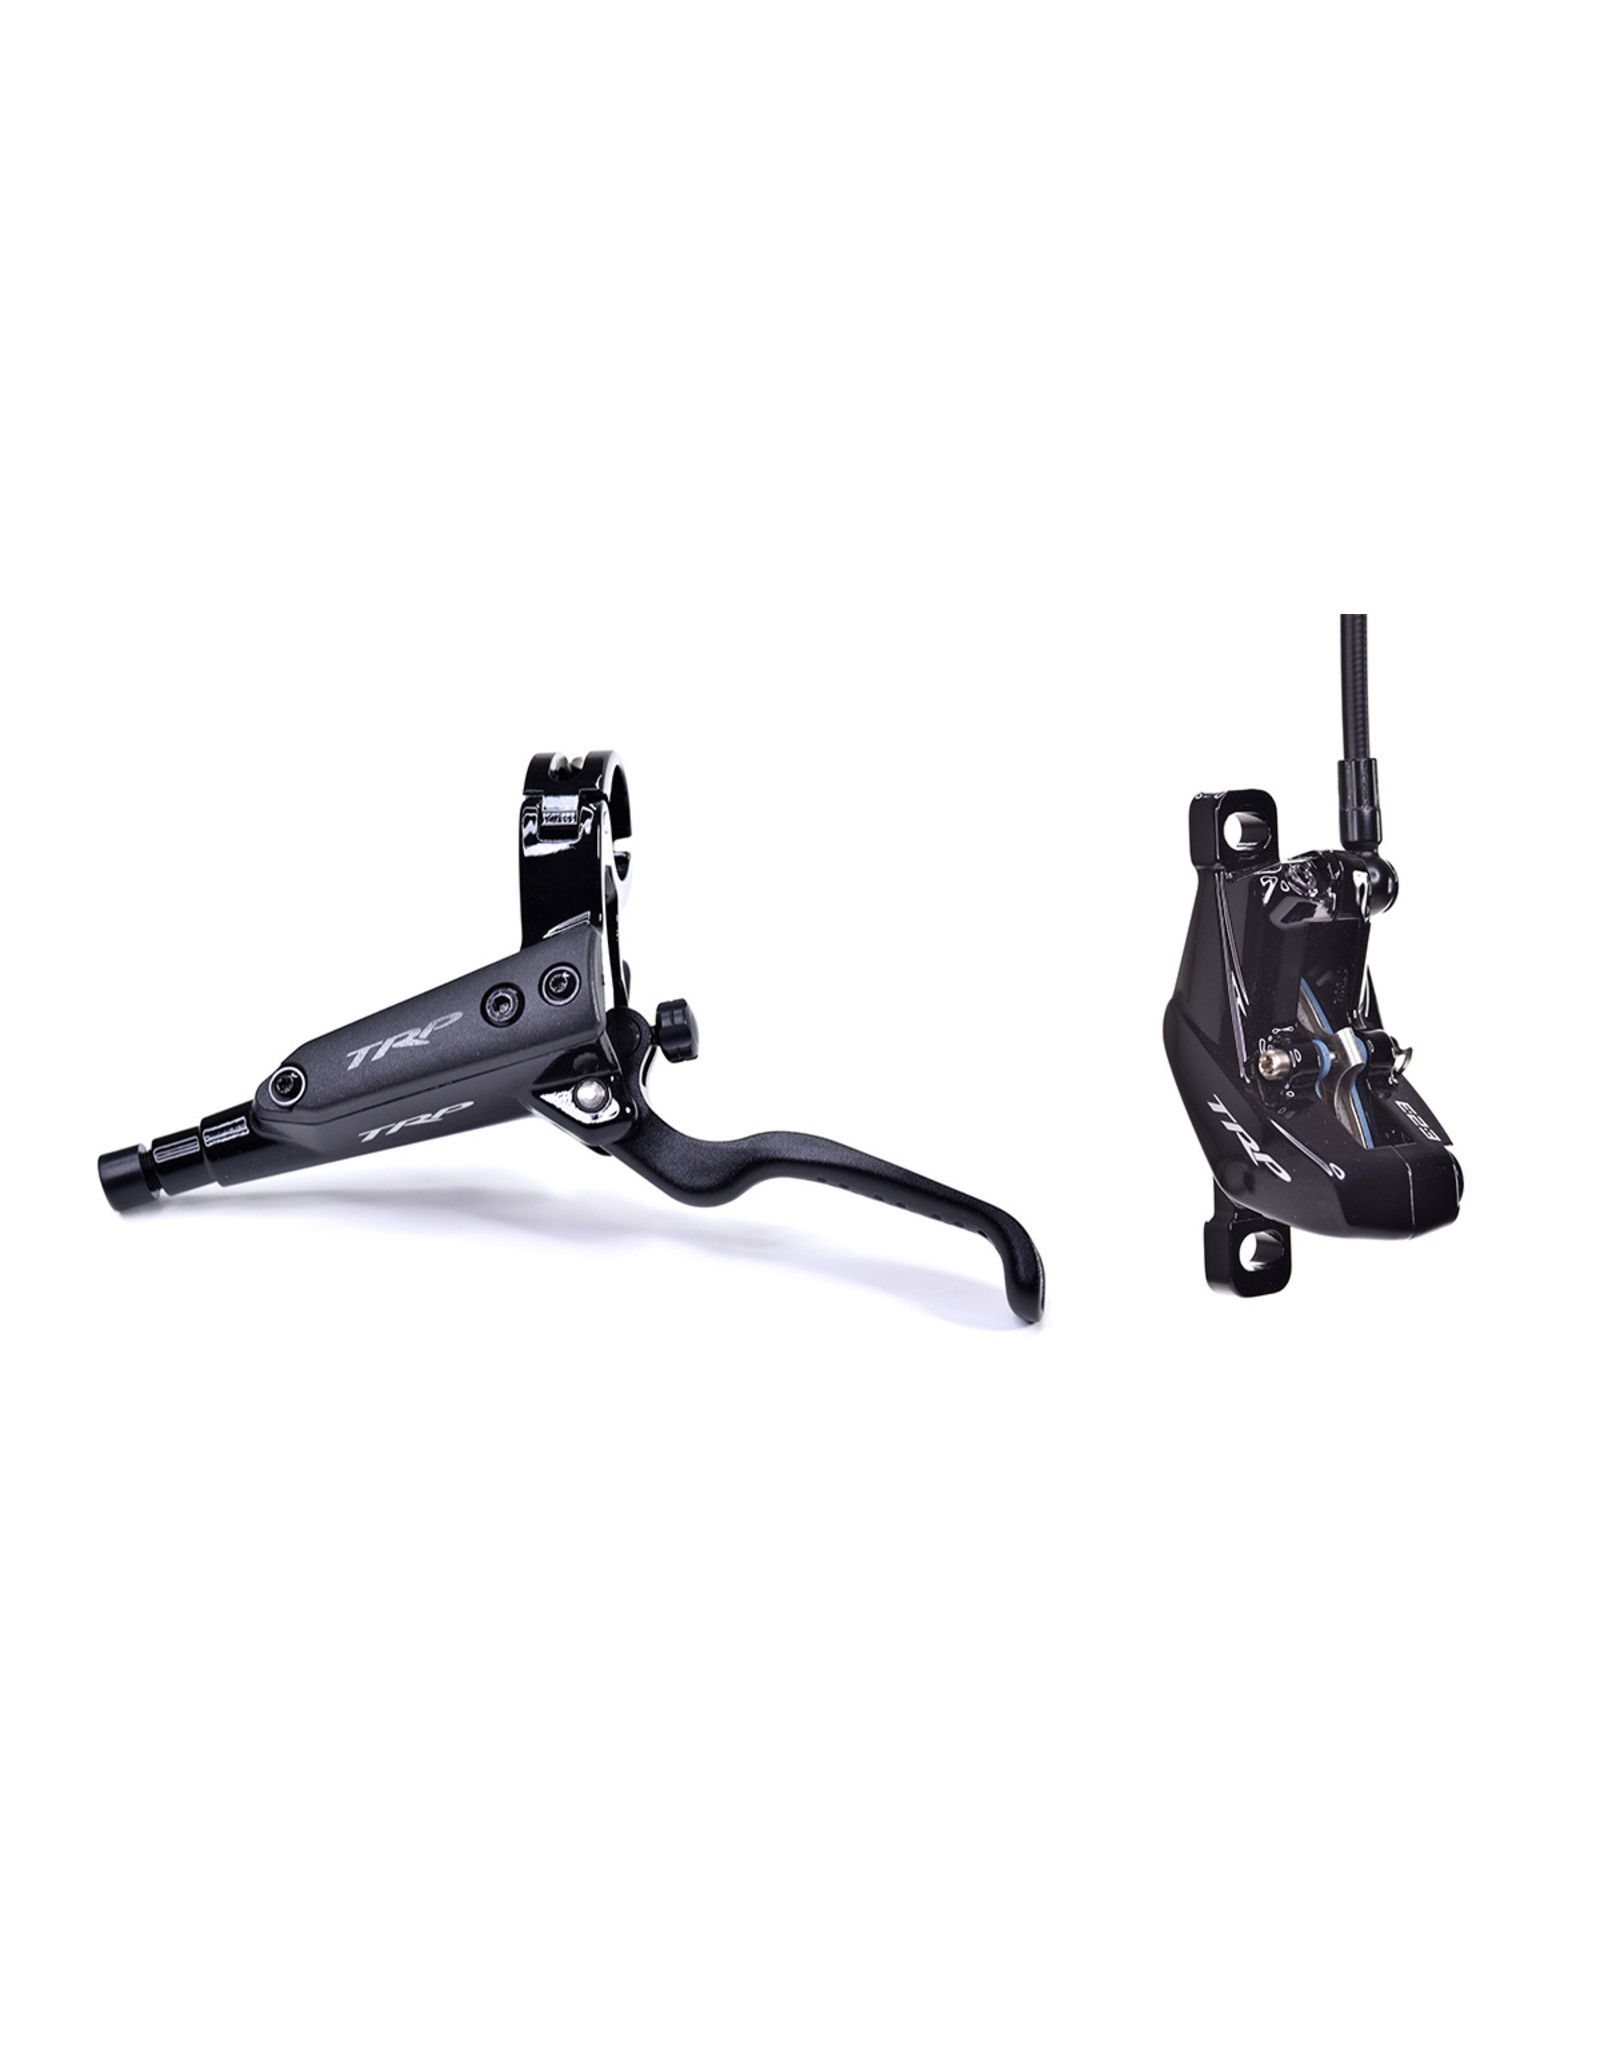 TRP G-Spec DHR Disc Brake and Lever - Front, Hydraulic, Post Mount, Black